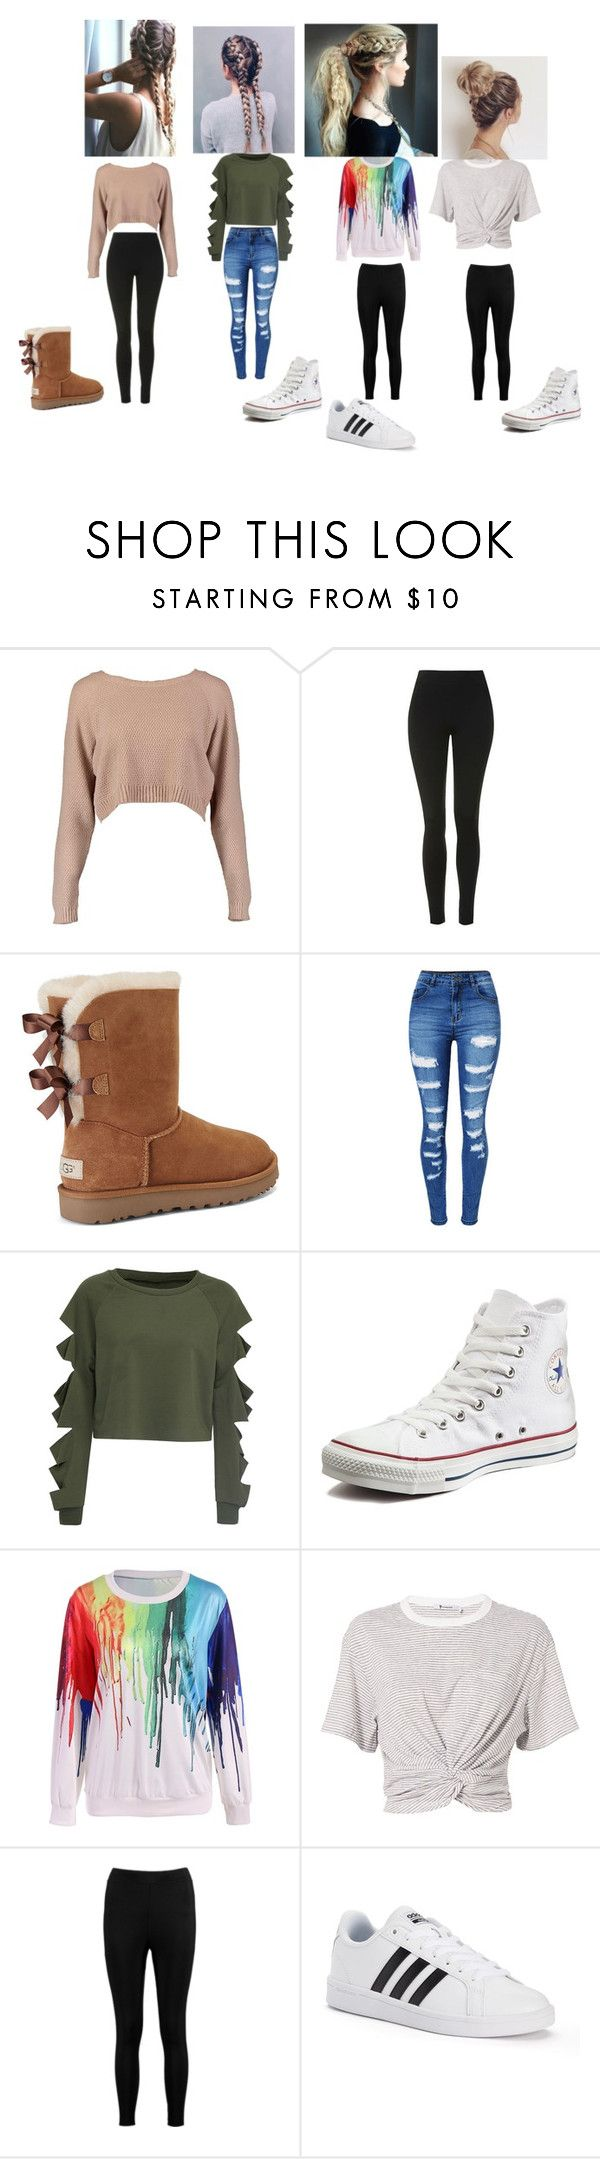 """""""squad"""" by nylaalvarez on Polyvore featuring Boohoo, Topshop, UGG, WithChic, Converse, T By Alexander Wang and adidas"""